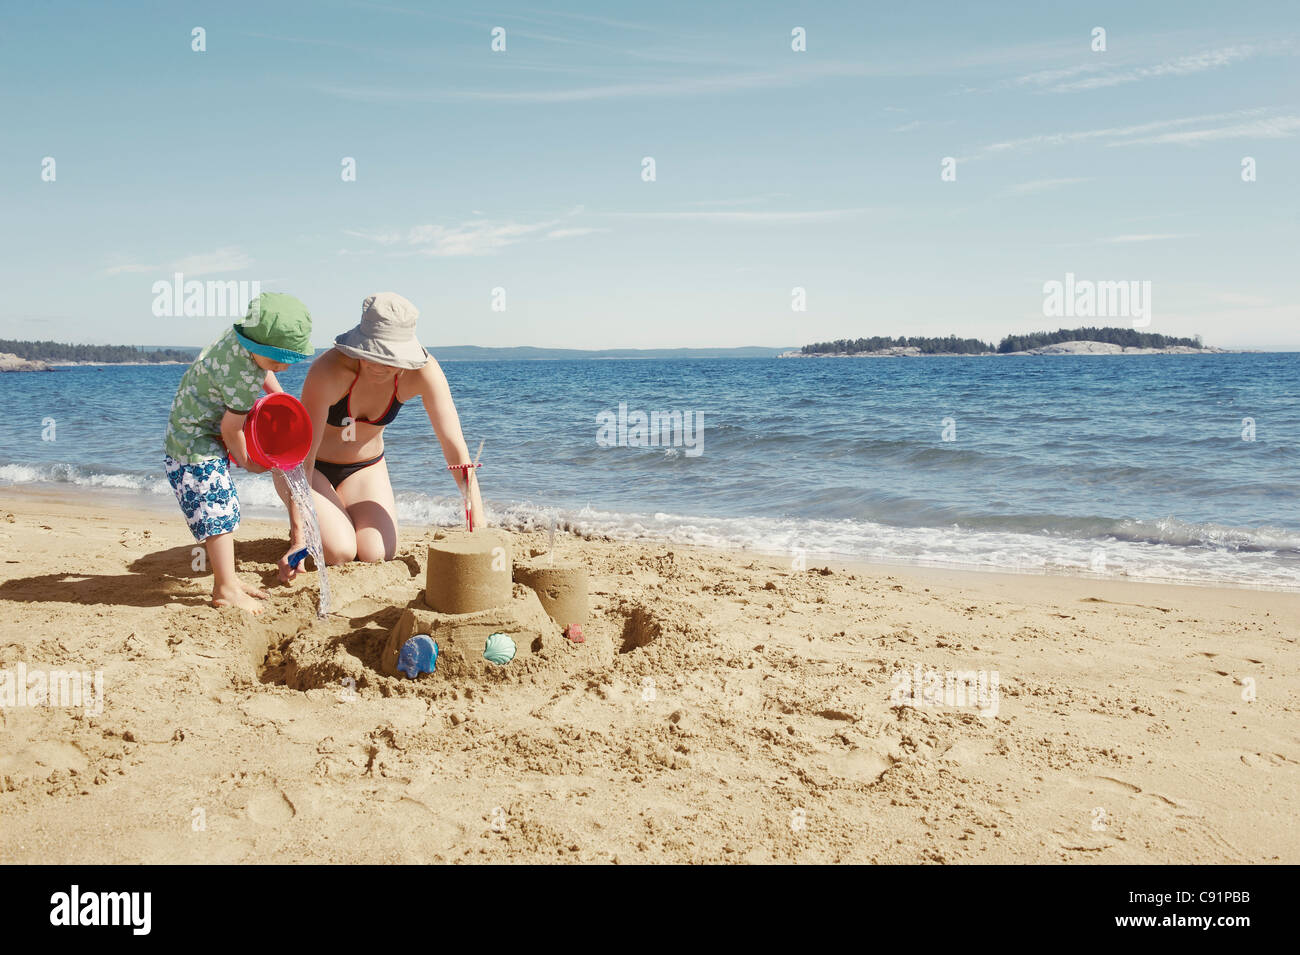 Mother and child building sandcastle - Stock Image